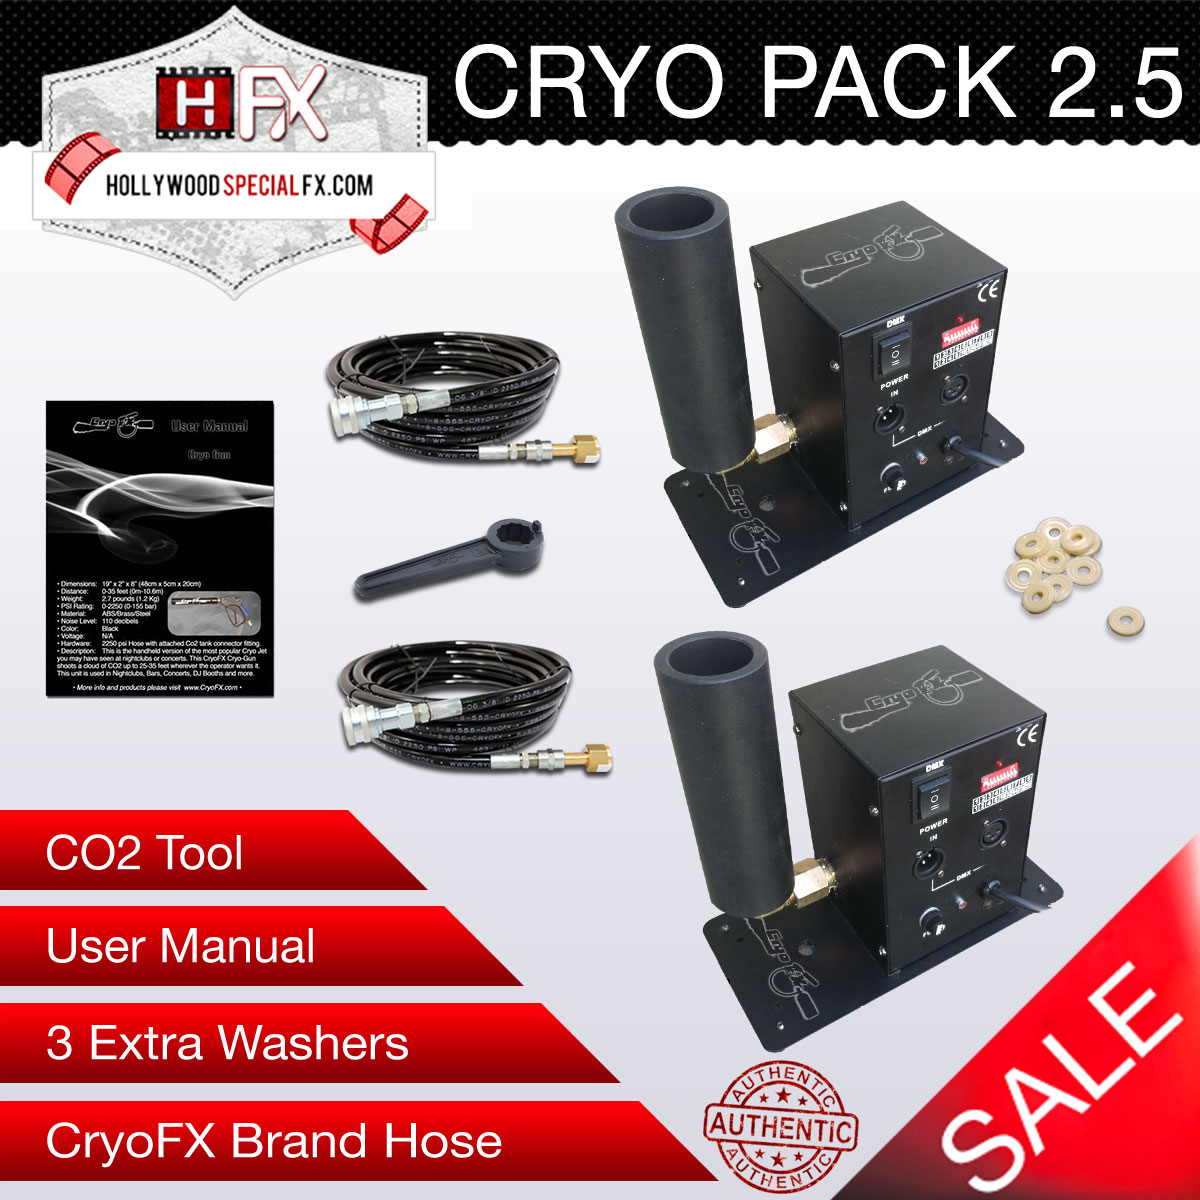 CO2 Jet Cryo Package with 2 CO2 Jets Special Effects Club Cannon for Sale